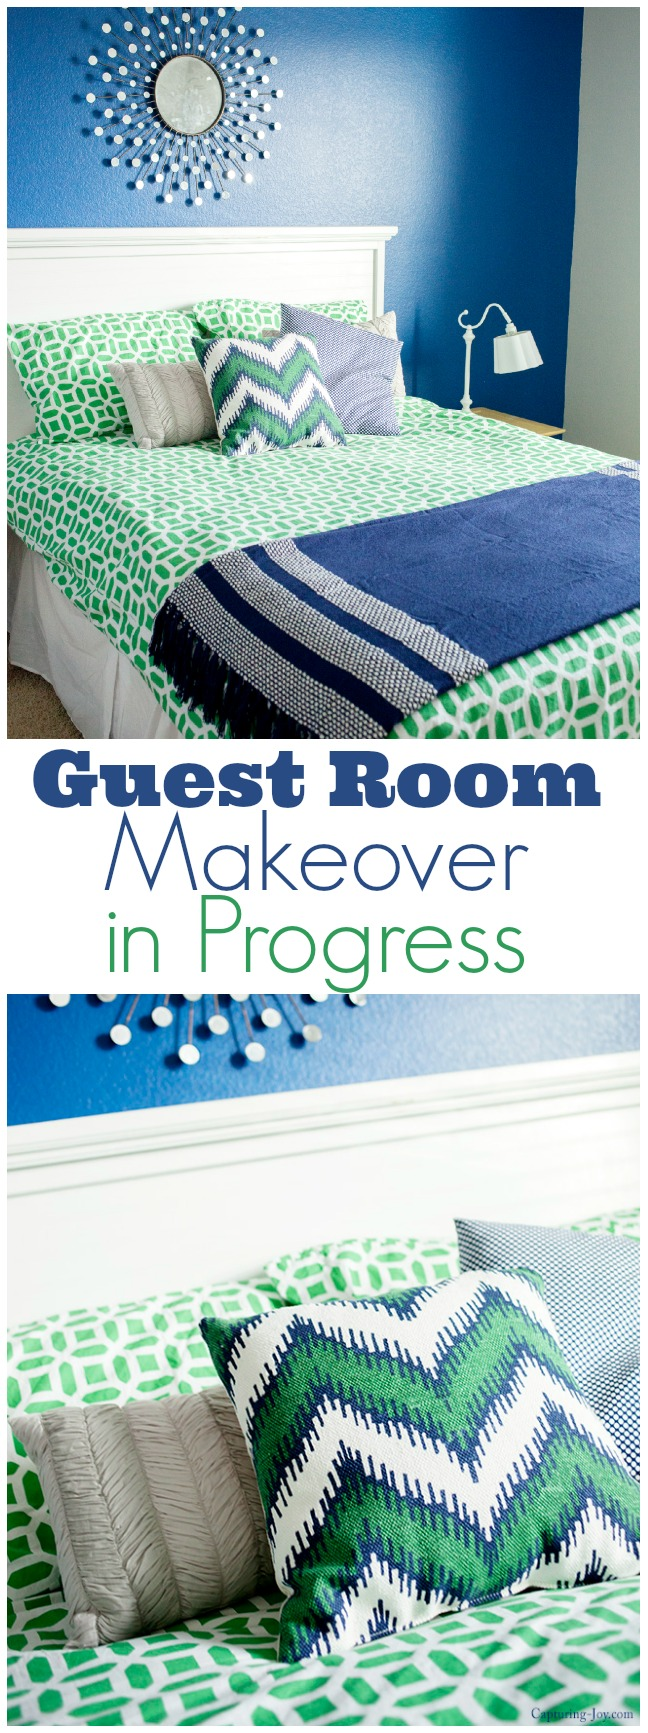 Guest Room Bedding from Potter Barn